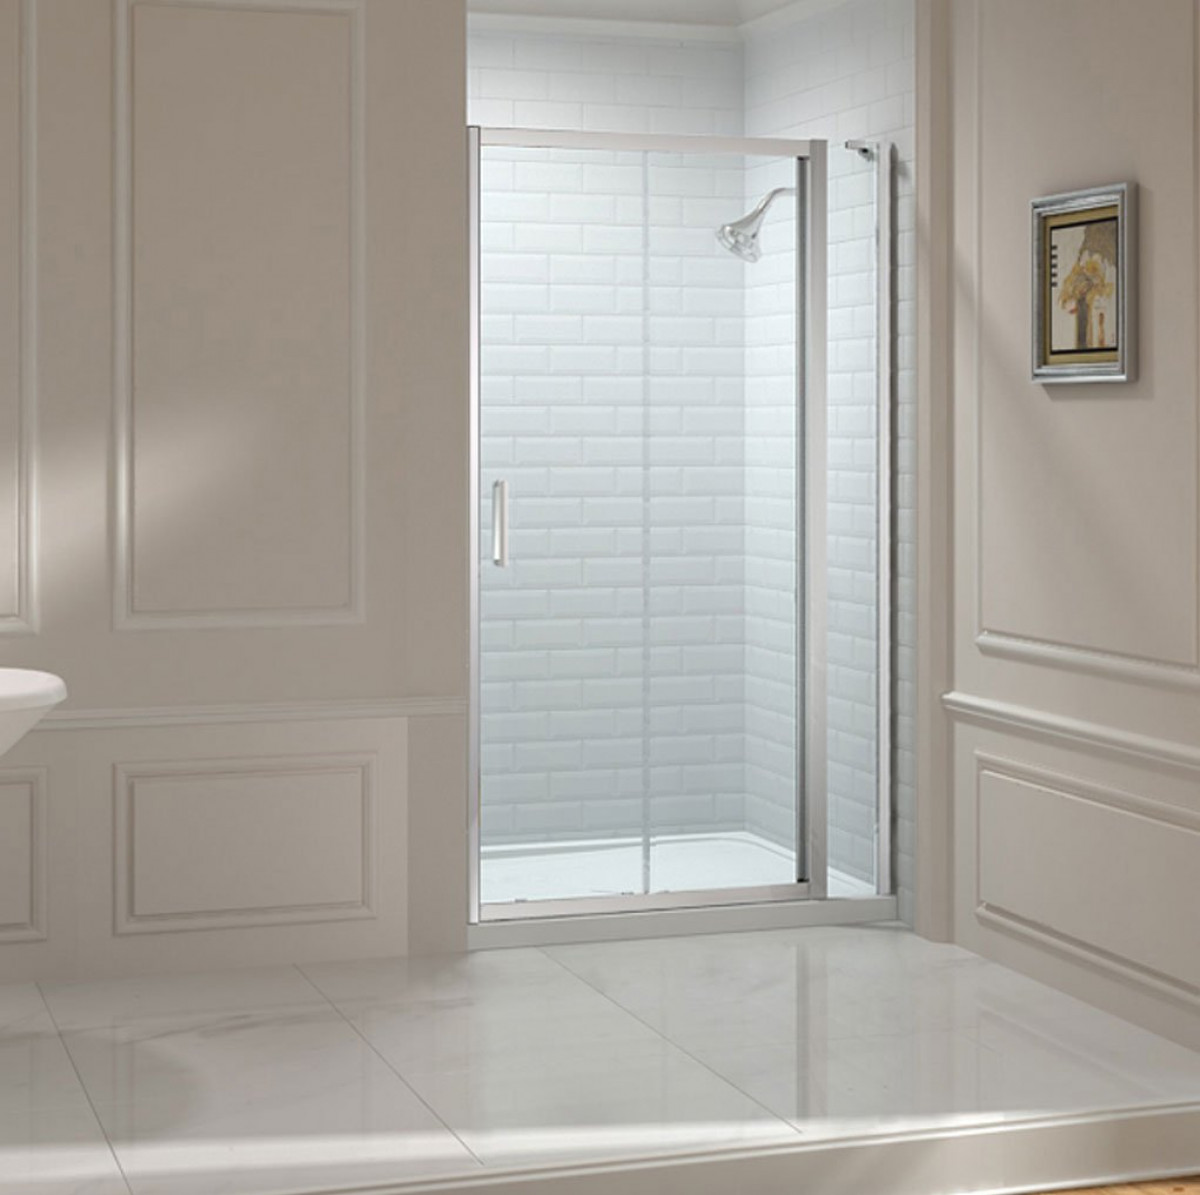 Merlyn 8 series 1900mm sliding shower door and inline for 1300 mm sliding shower door